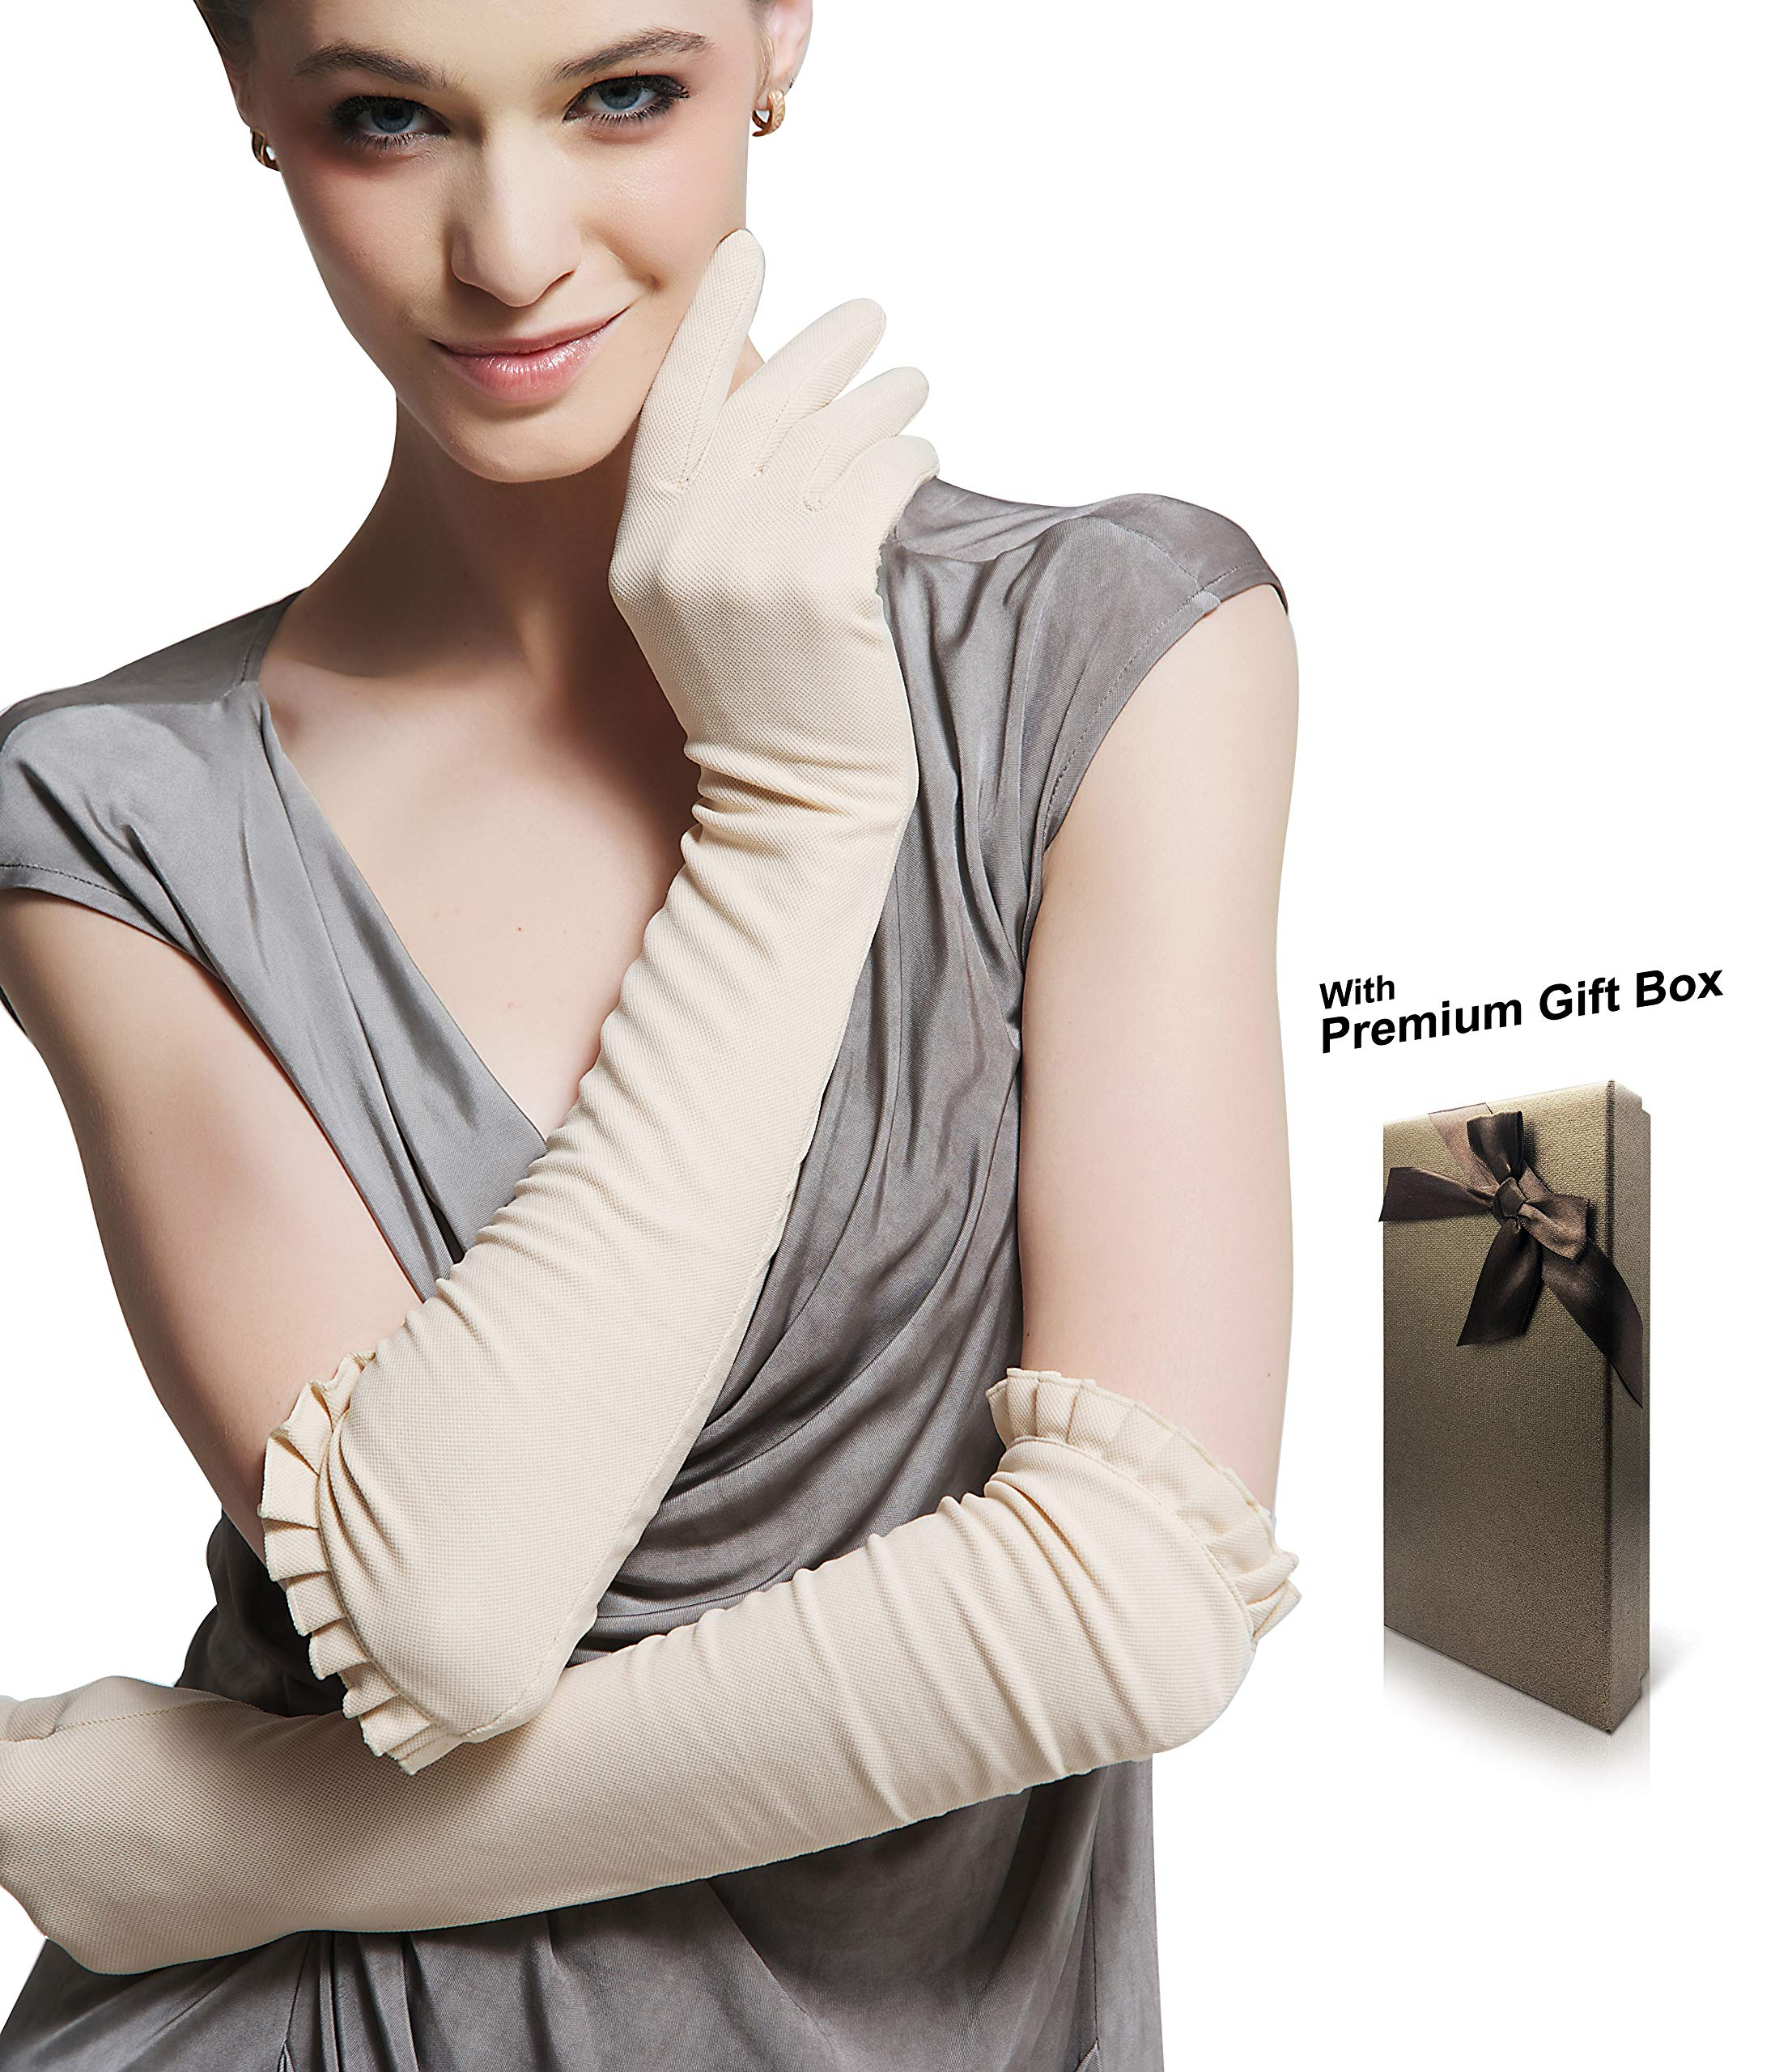 Women's Outdoor Sun Block Soft 18.0'' Elbow Length Long Gloves for Driving/Golf/Party/Outdoor with Gift Box